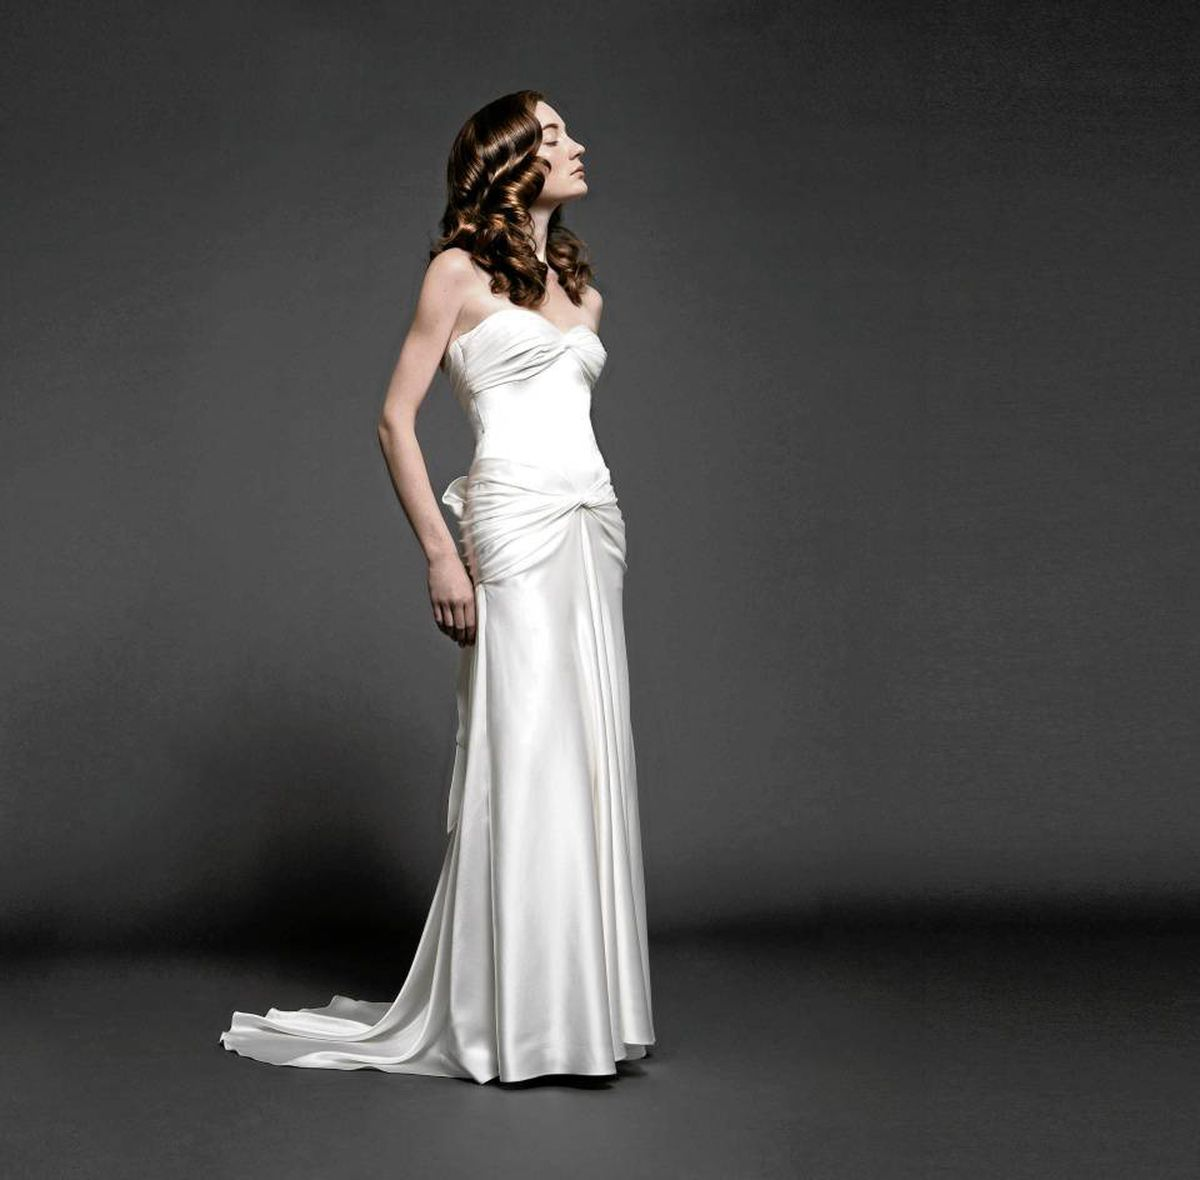 The Grecian goddess look as interpreted by Vera Wang and Elie Saab flatters fuller figures by giving the impression of a nipped waist. The gown pictured here is by Toronto designer Adele Wechsler, whose full collecation can be viewed at www.adelewechsler.com.